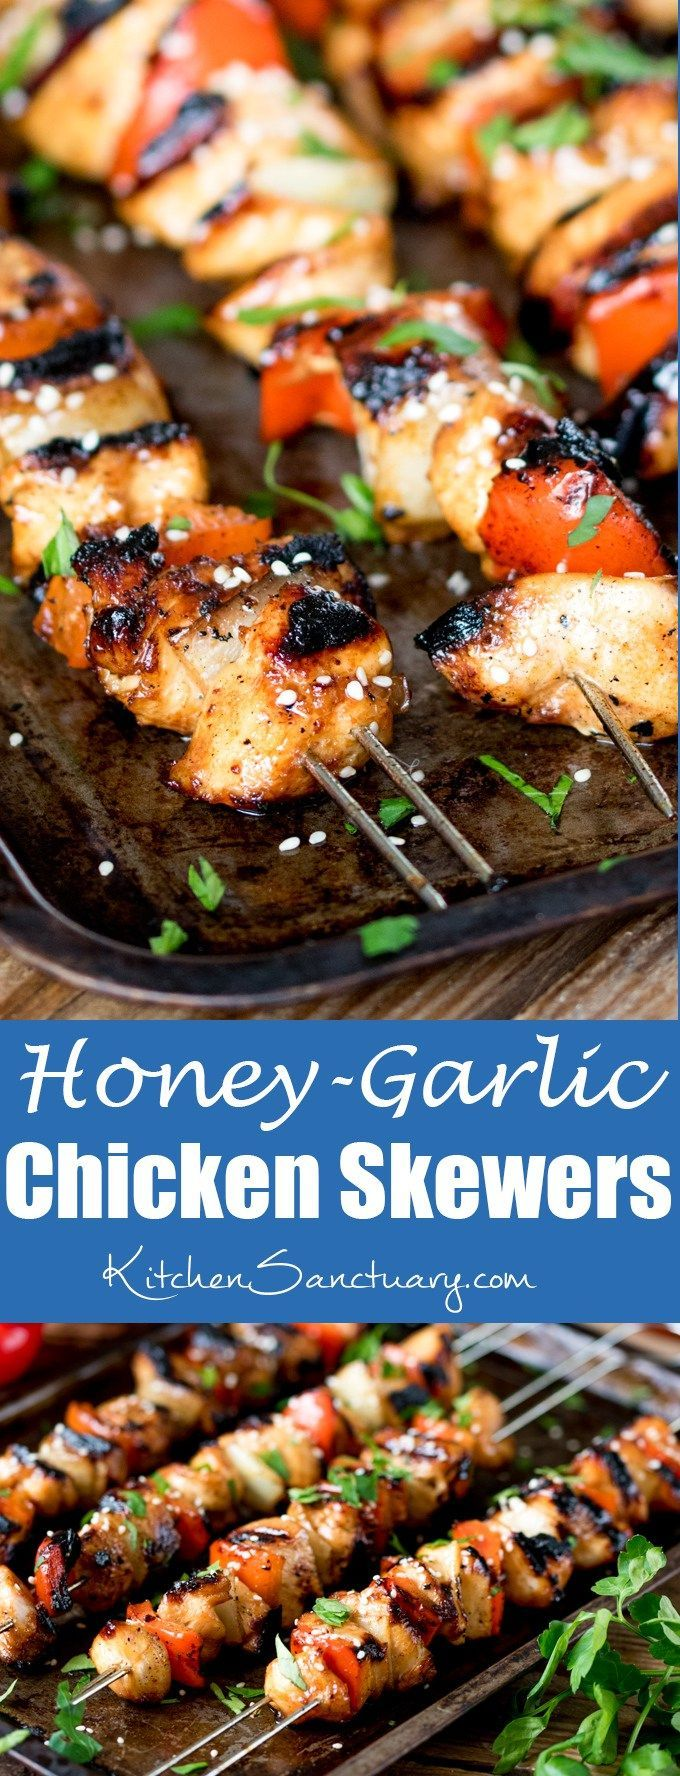 How long do i grill chicken kabobs - Honey Garlic Chicken Skewers